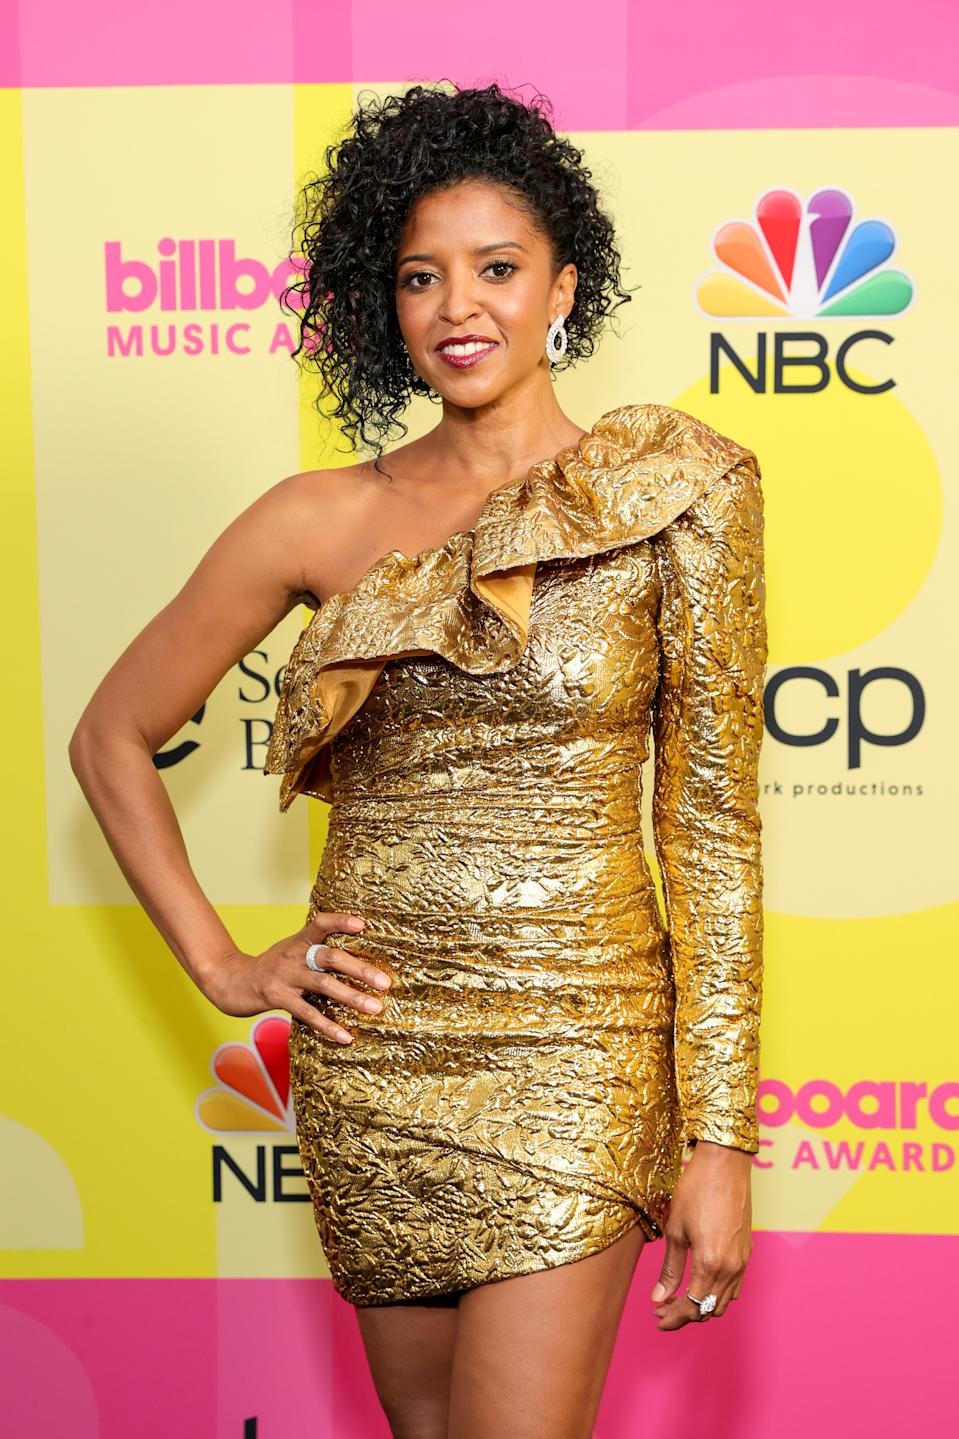 LOS ANGELES, CALIFORNIA - MAY 23: Renée Elise Goldsberry poses backstage for the 2021 Billboard Music Awards, broadcast on May 23, 2021 at Microsoft Theater in Los Angeles, California. (Photo by Rich Fury/Getty Images for dcp)